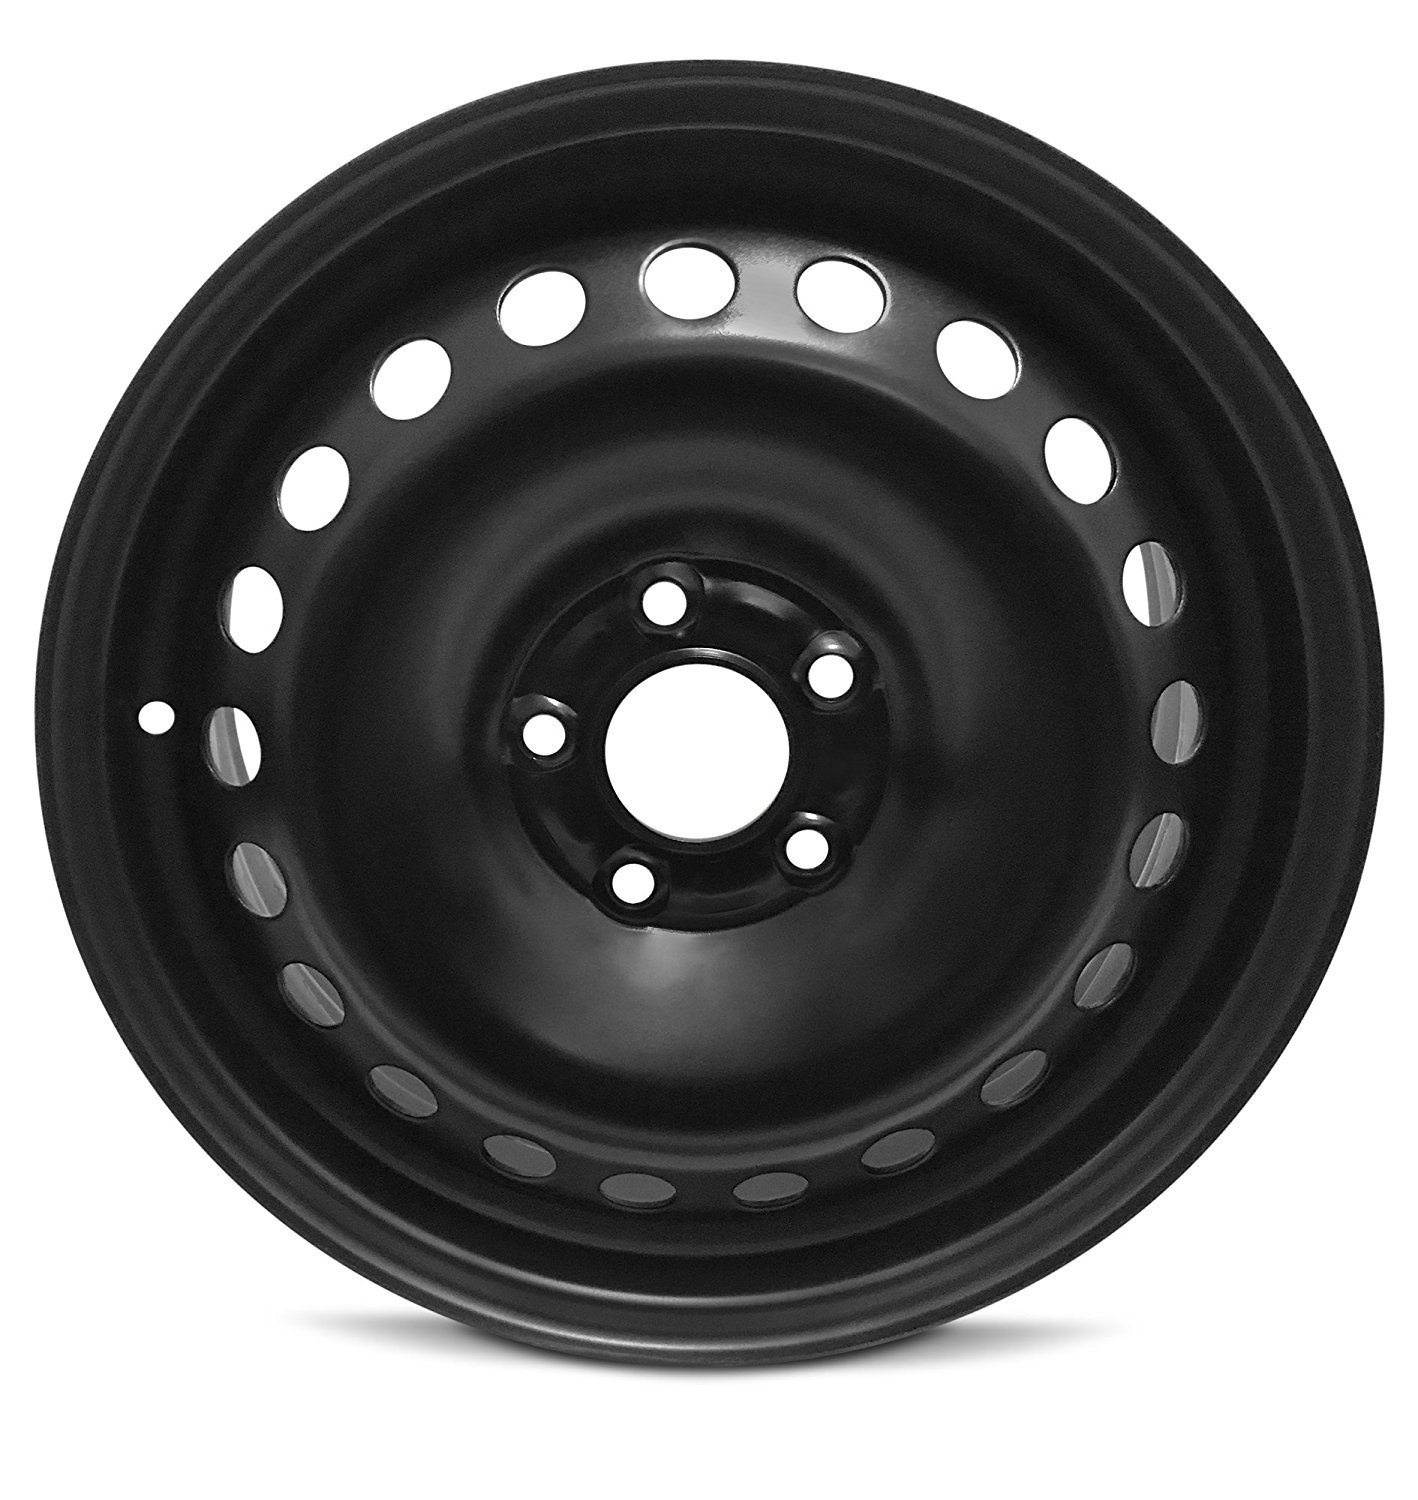 New 16''x6.5'' 5 Lug 2014-2016 Ford Transit Connect Black Replacement Steel Wheel Rim 5x108mm